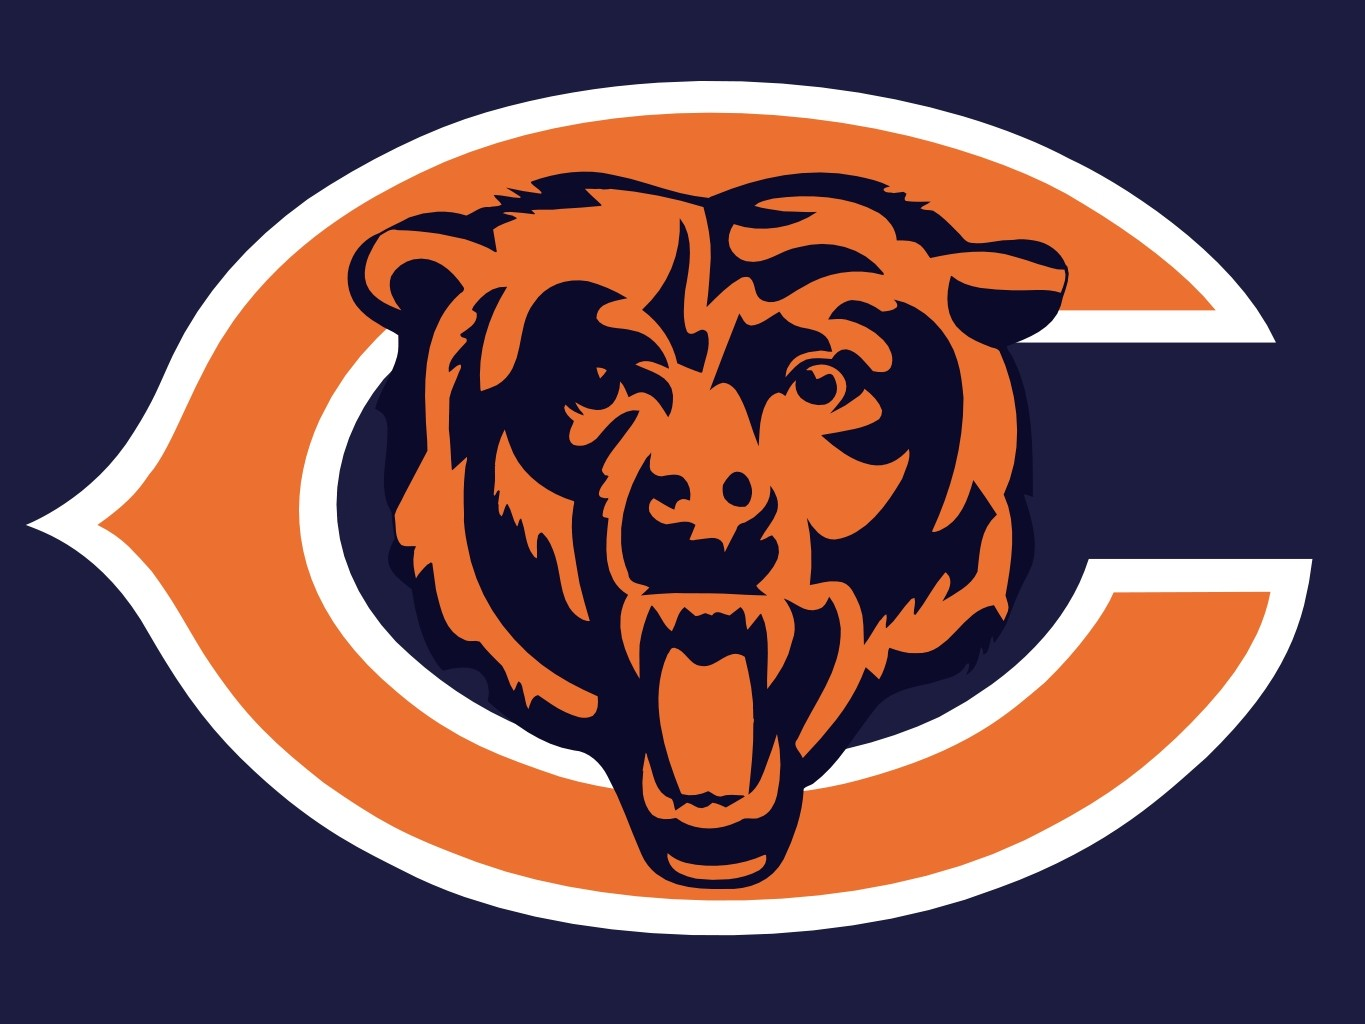 Chicago Bears Clip Art